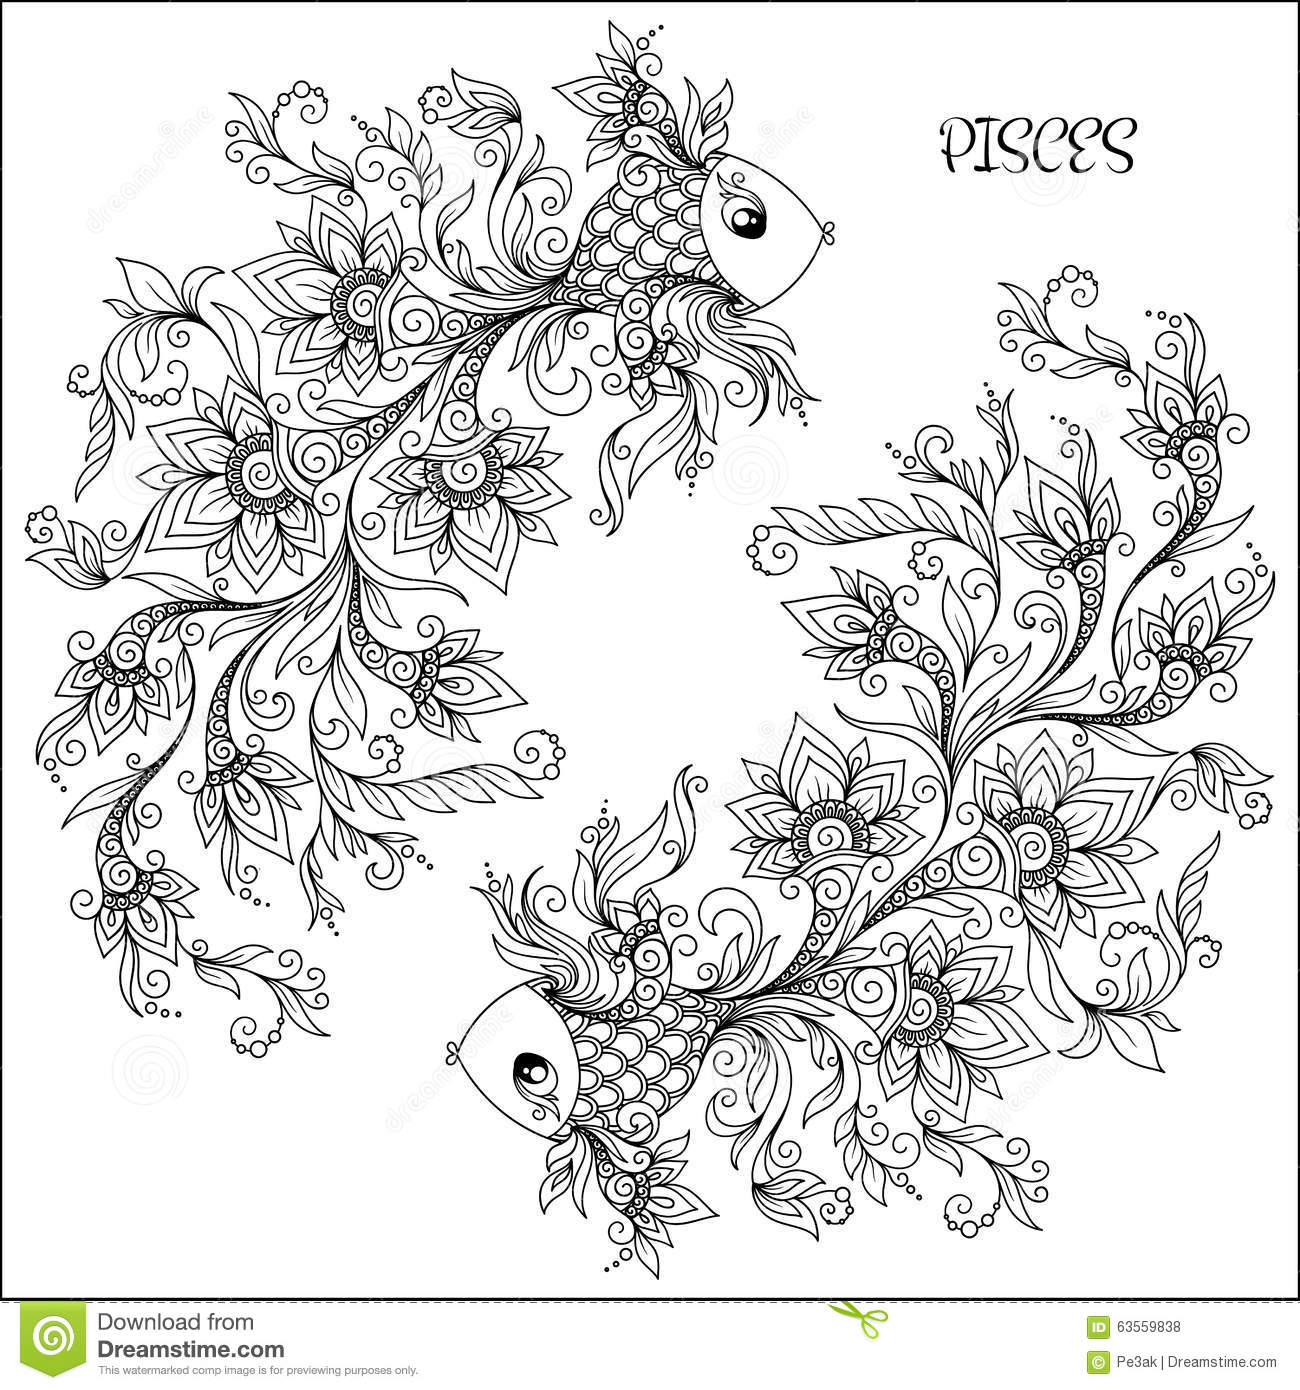 Pisces coloring #18, Download drawings